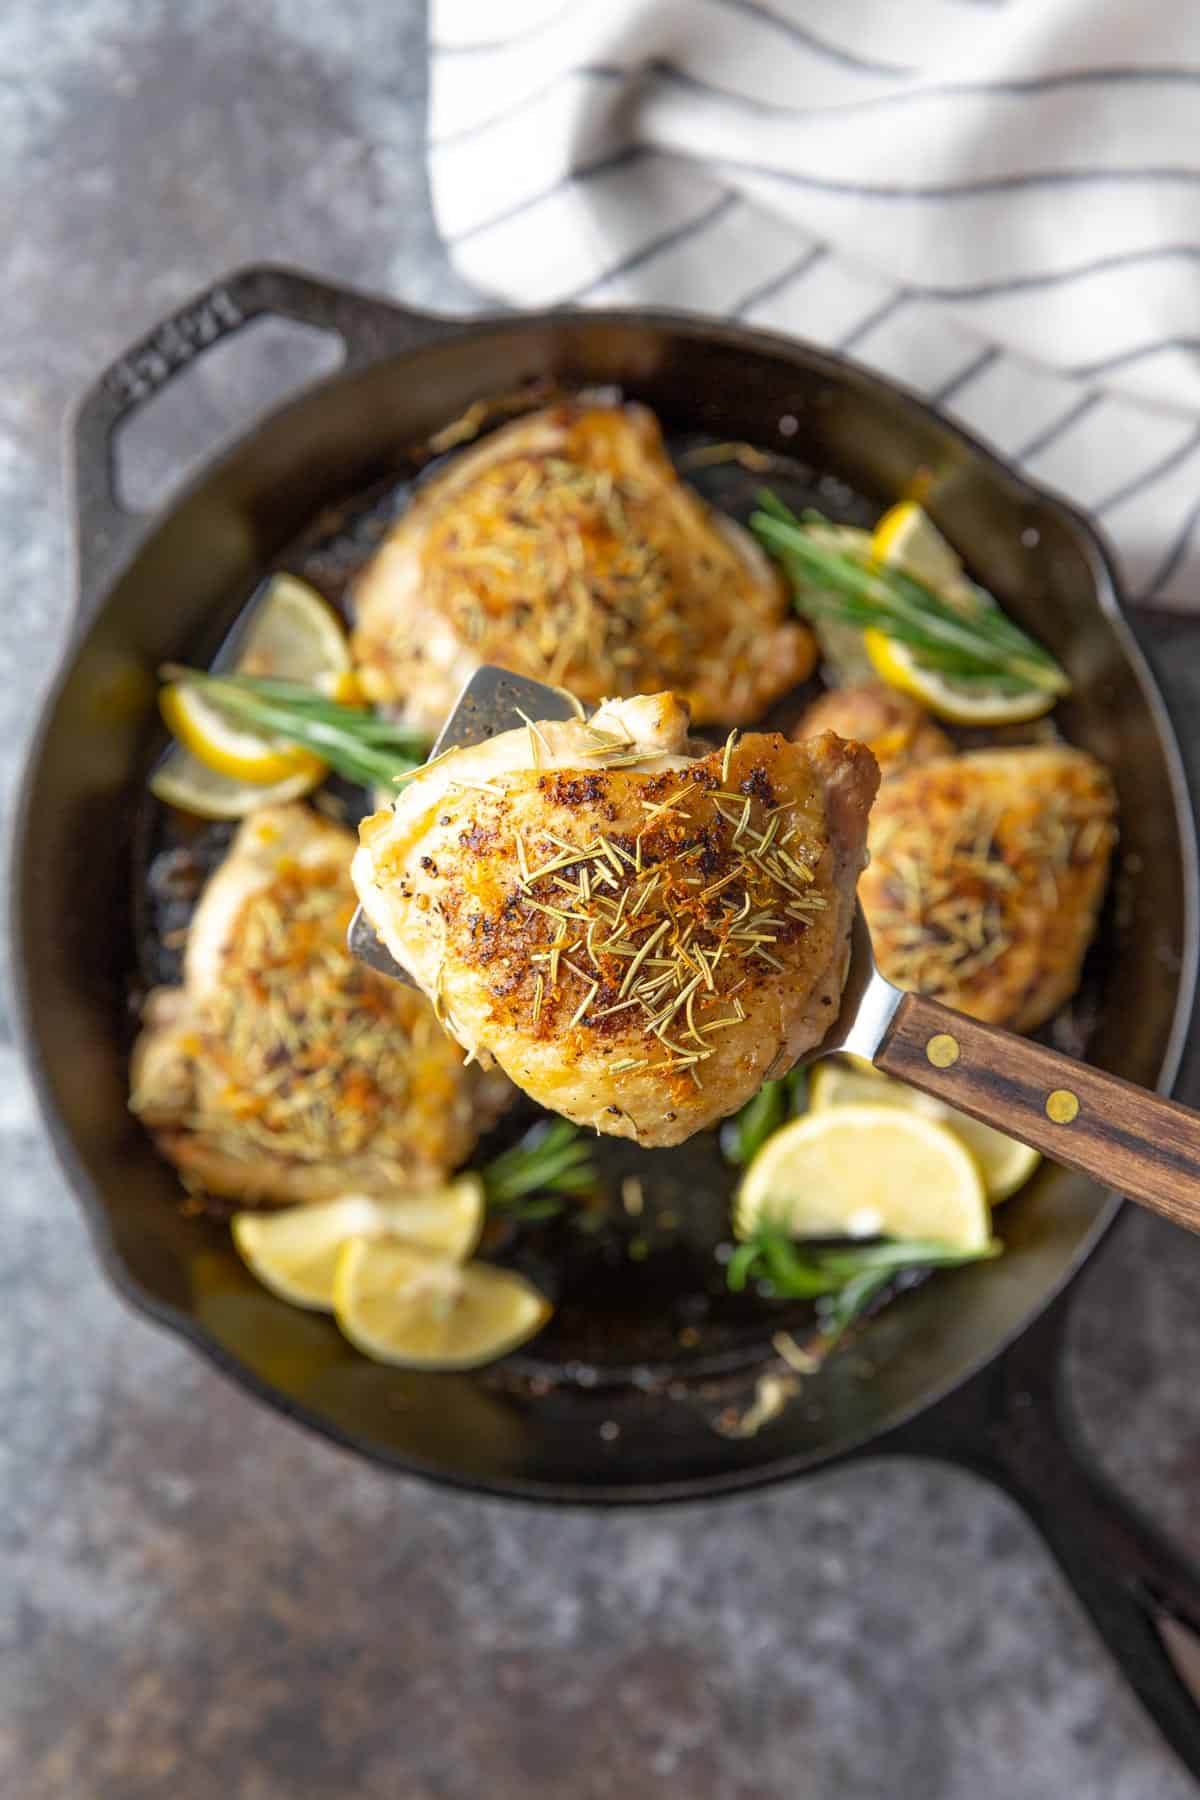 Overhead view of a spatula holding up a roasted chicken thigh over a skillet.